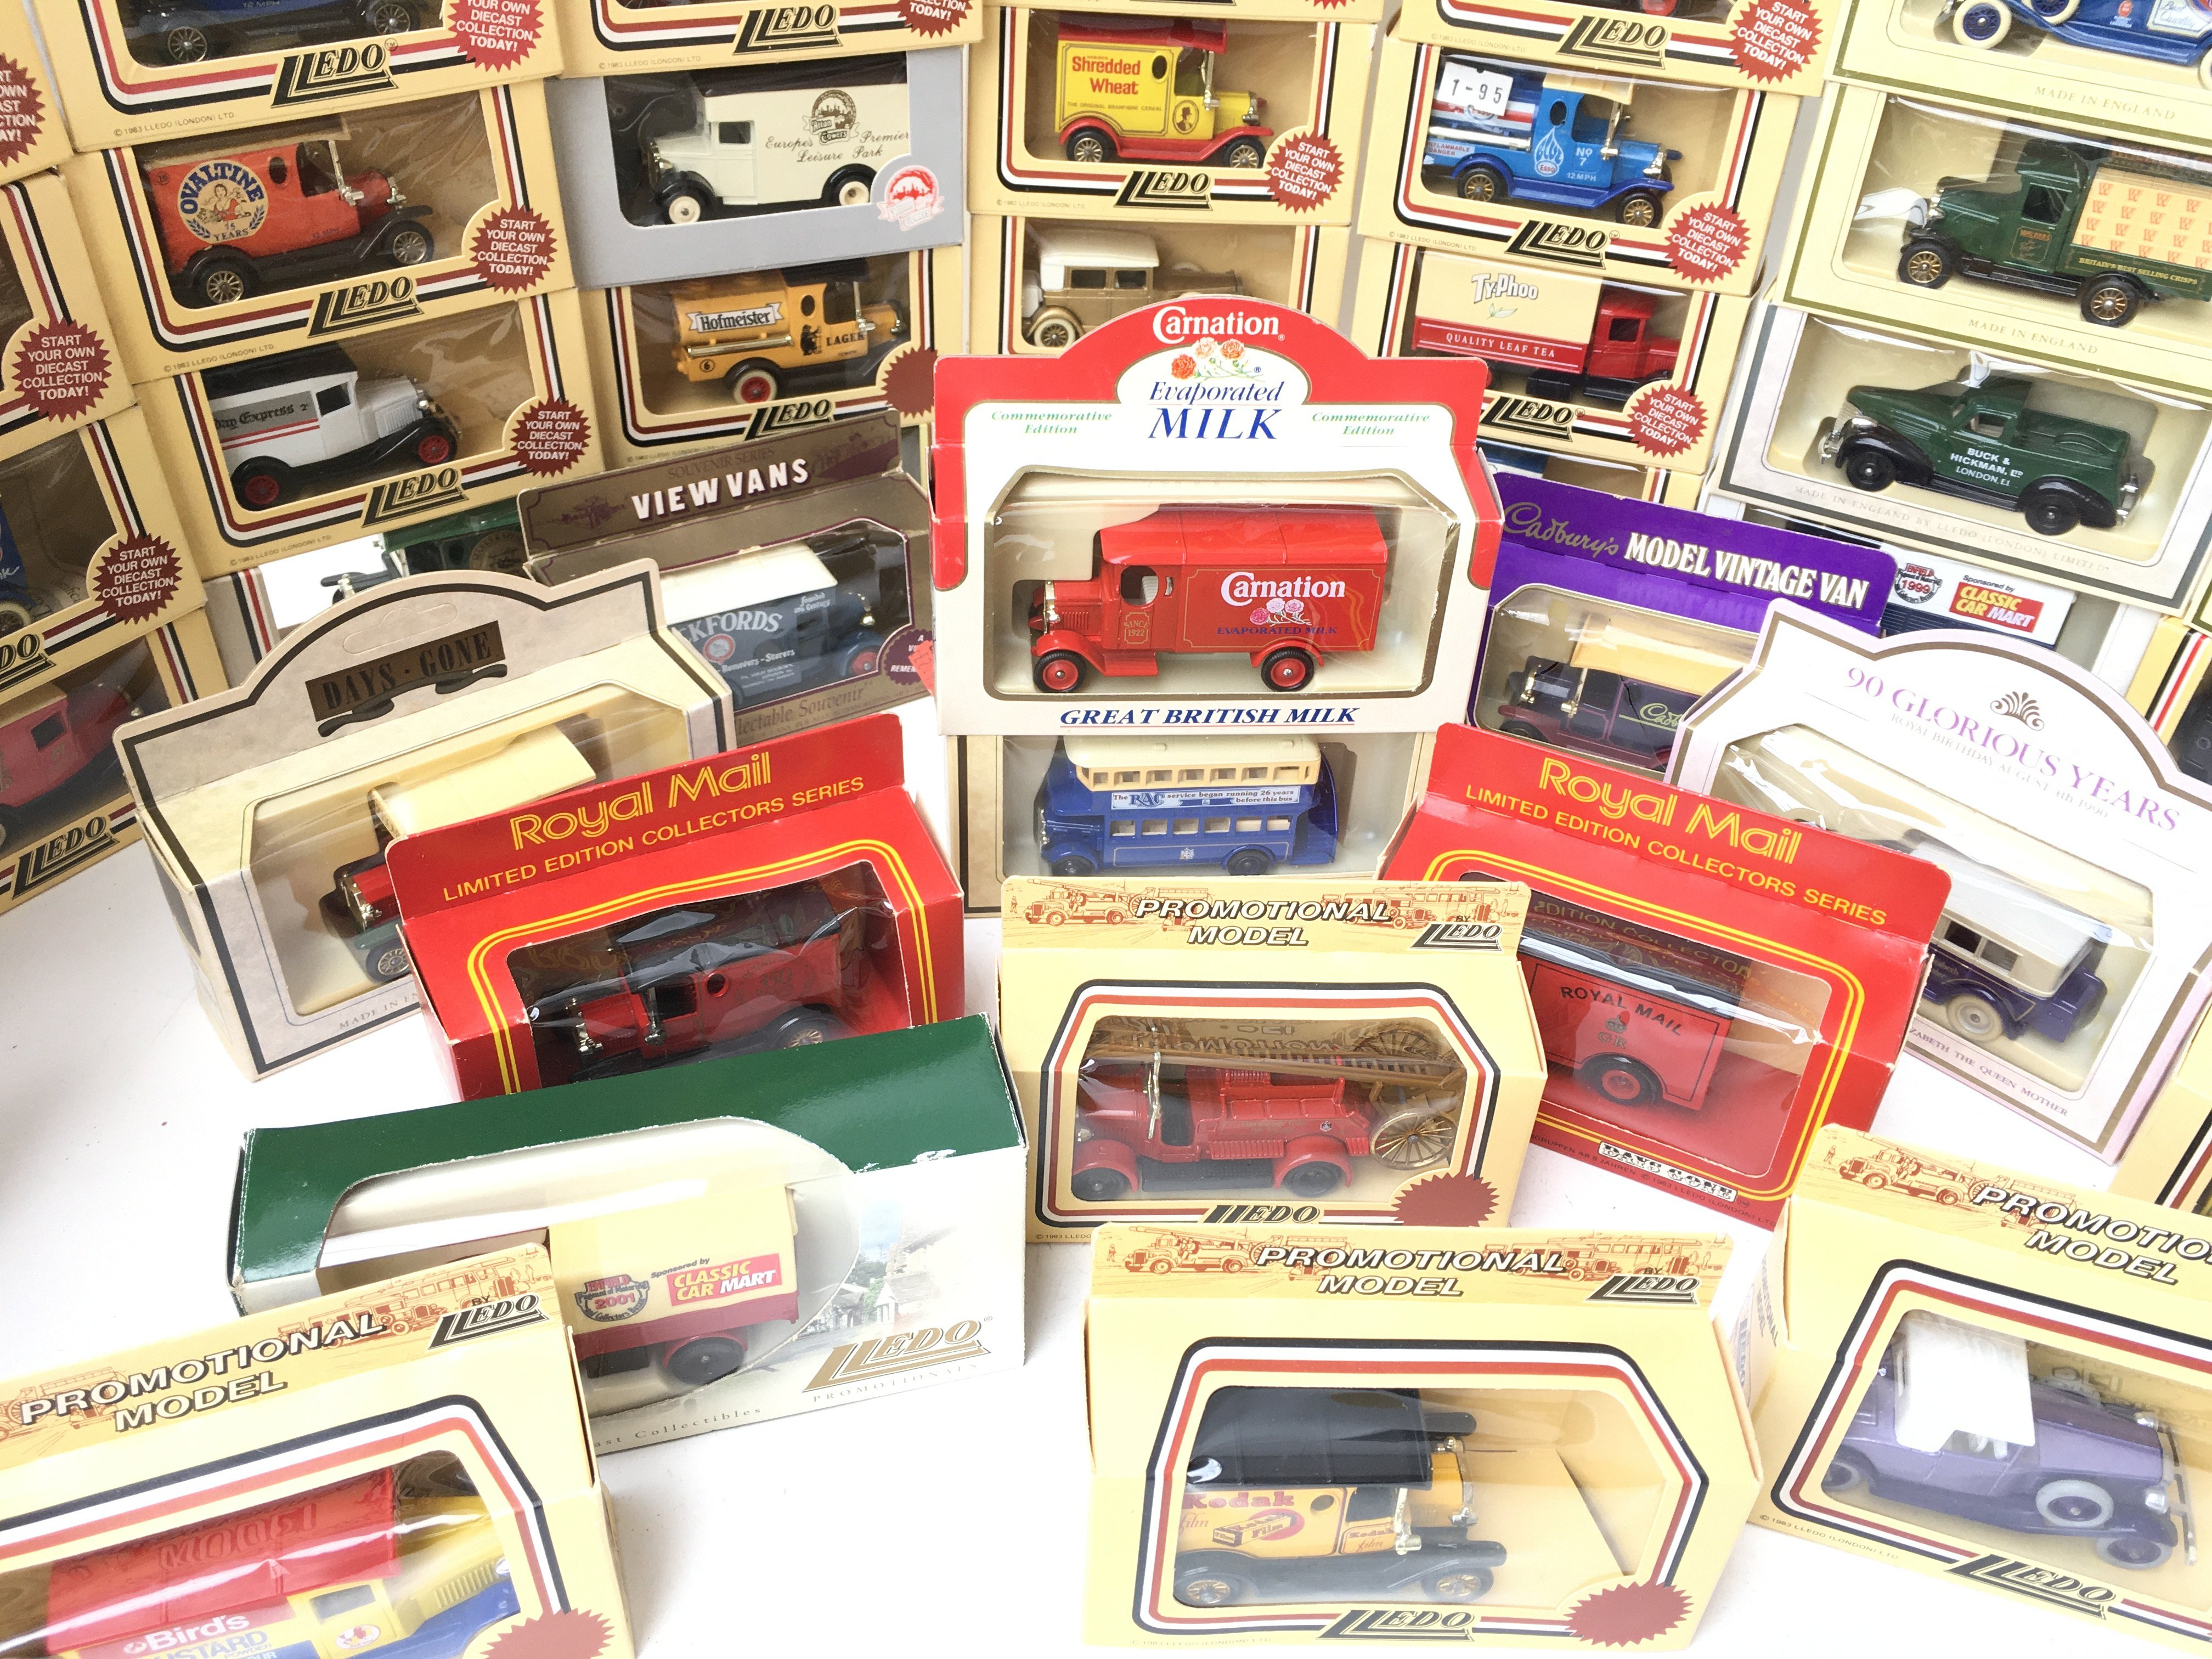 A Collection of LLedo Days Gone all boxed. - Image 4 of 4